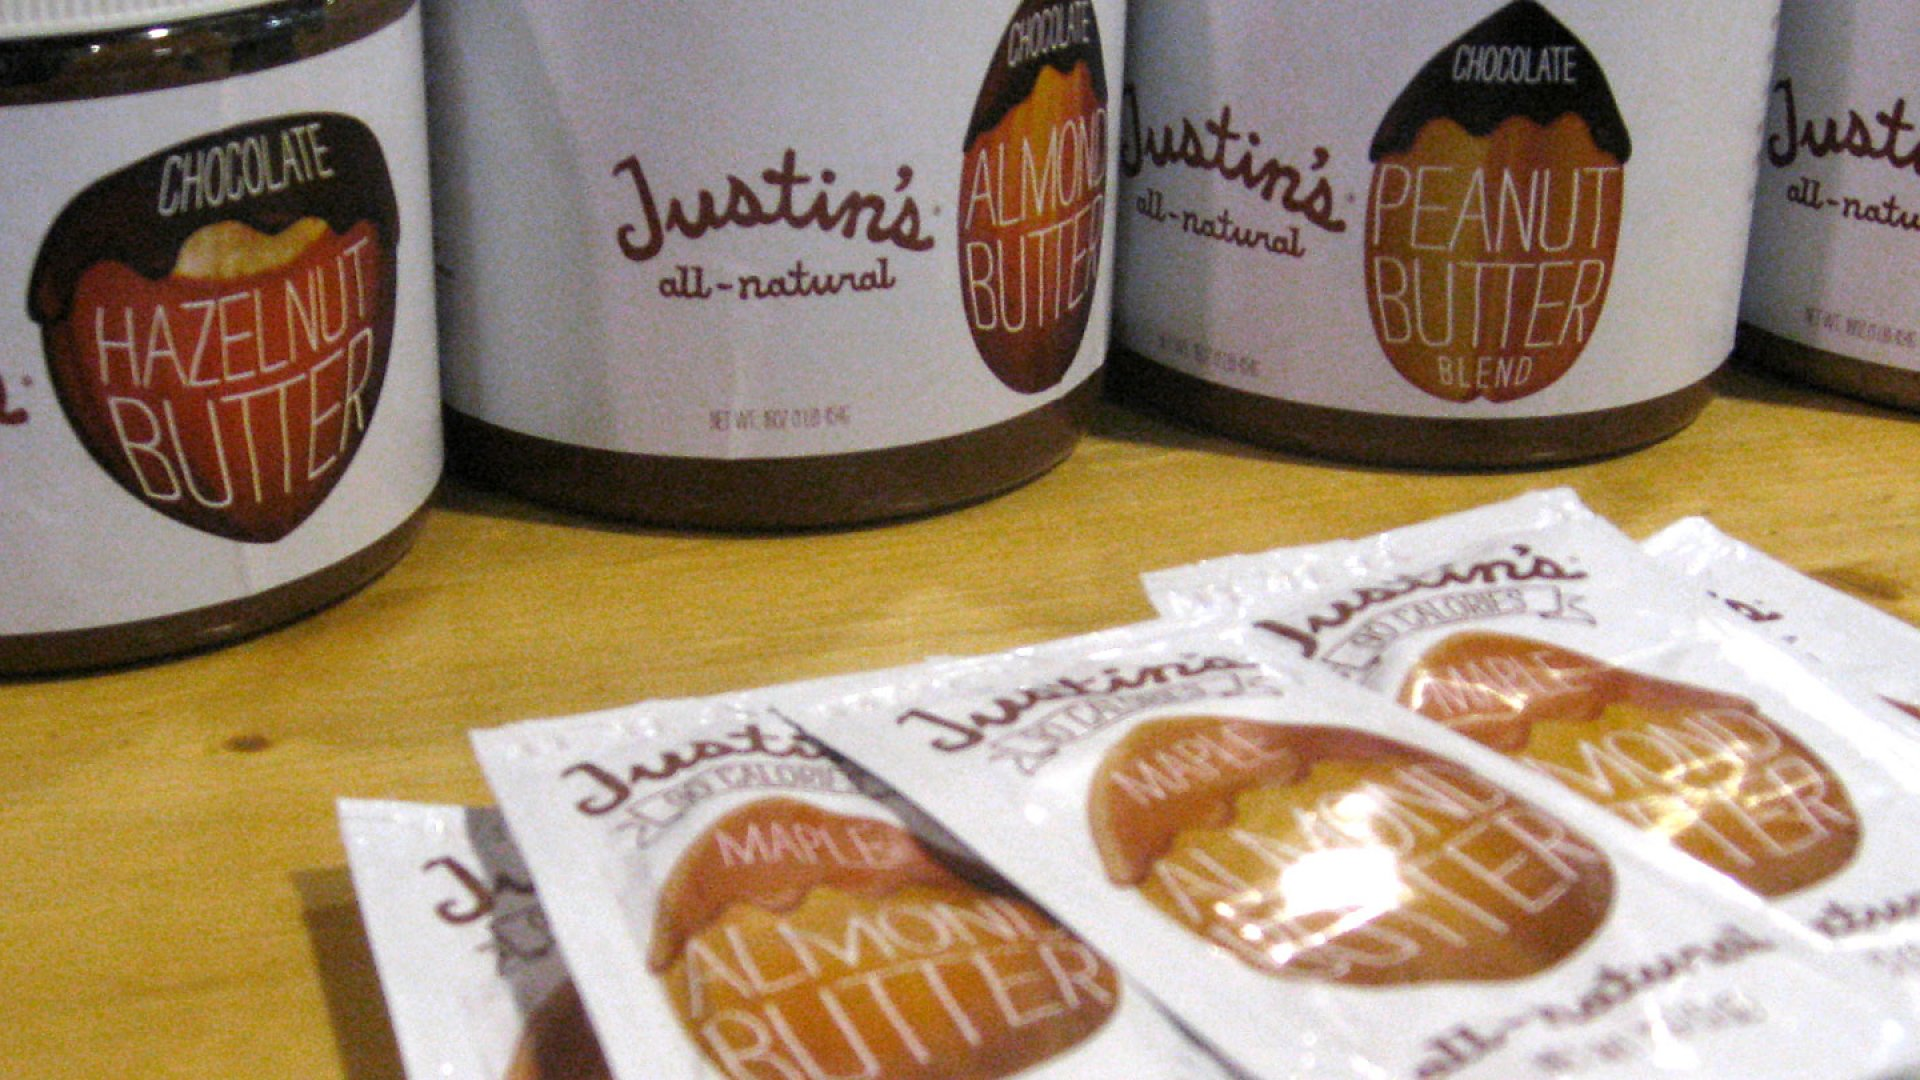 Packets of Justin's nut butter.